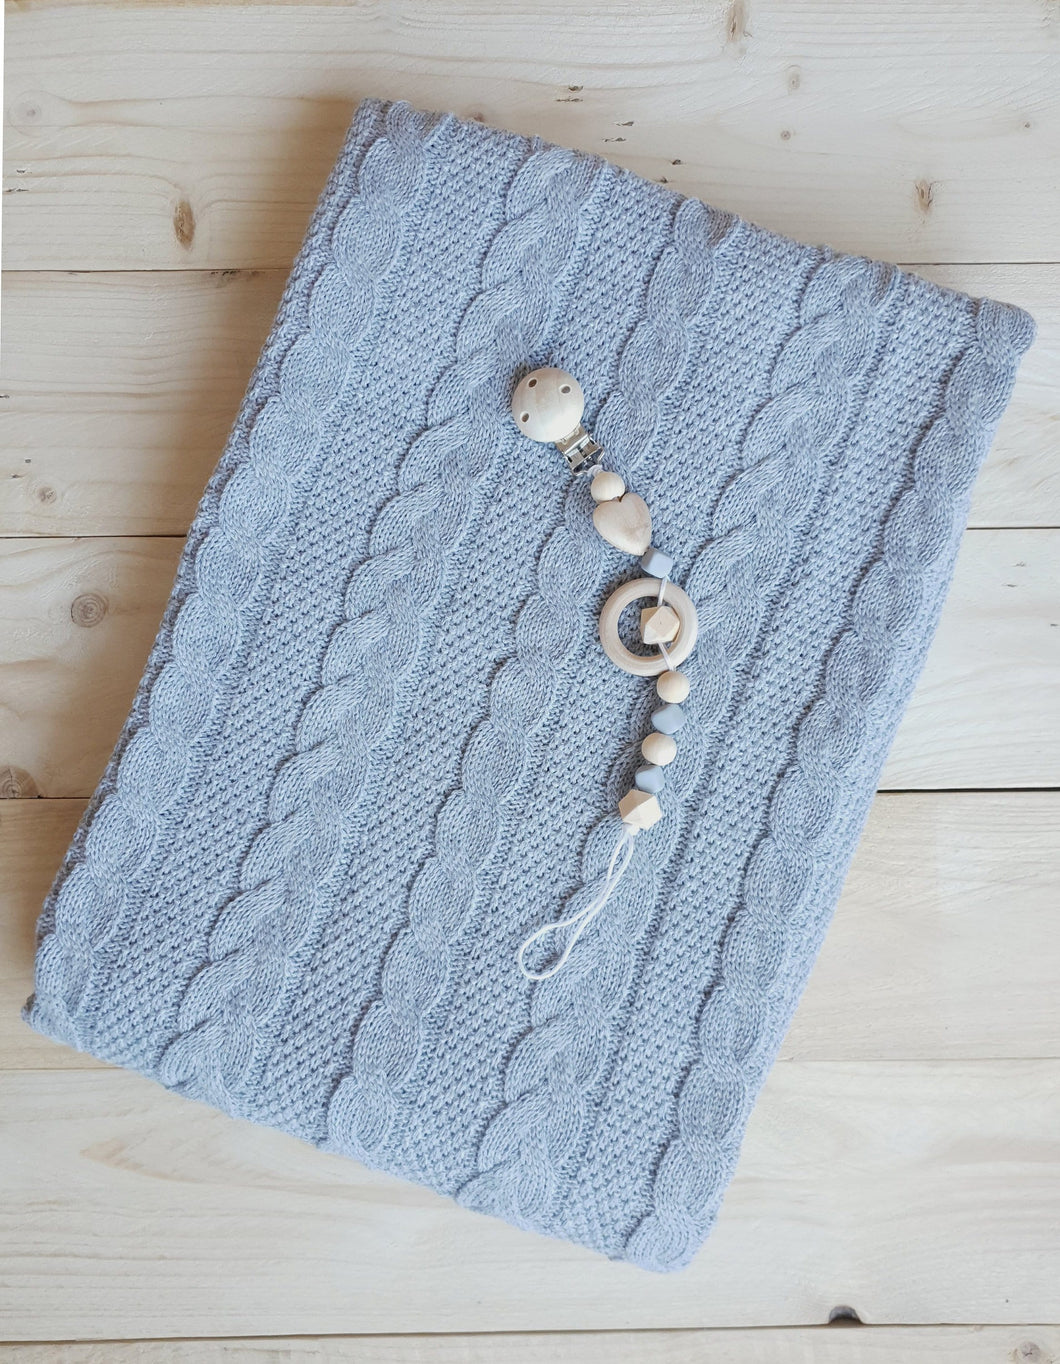 Knitted Baby Blanket freeshipping - Kiddio